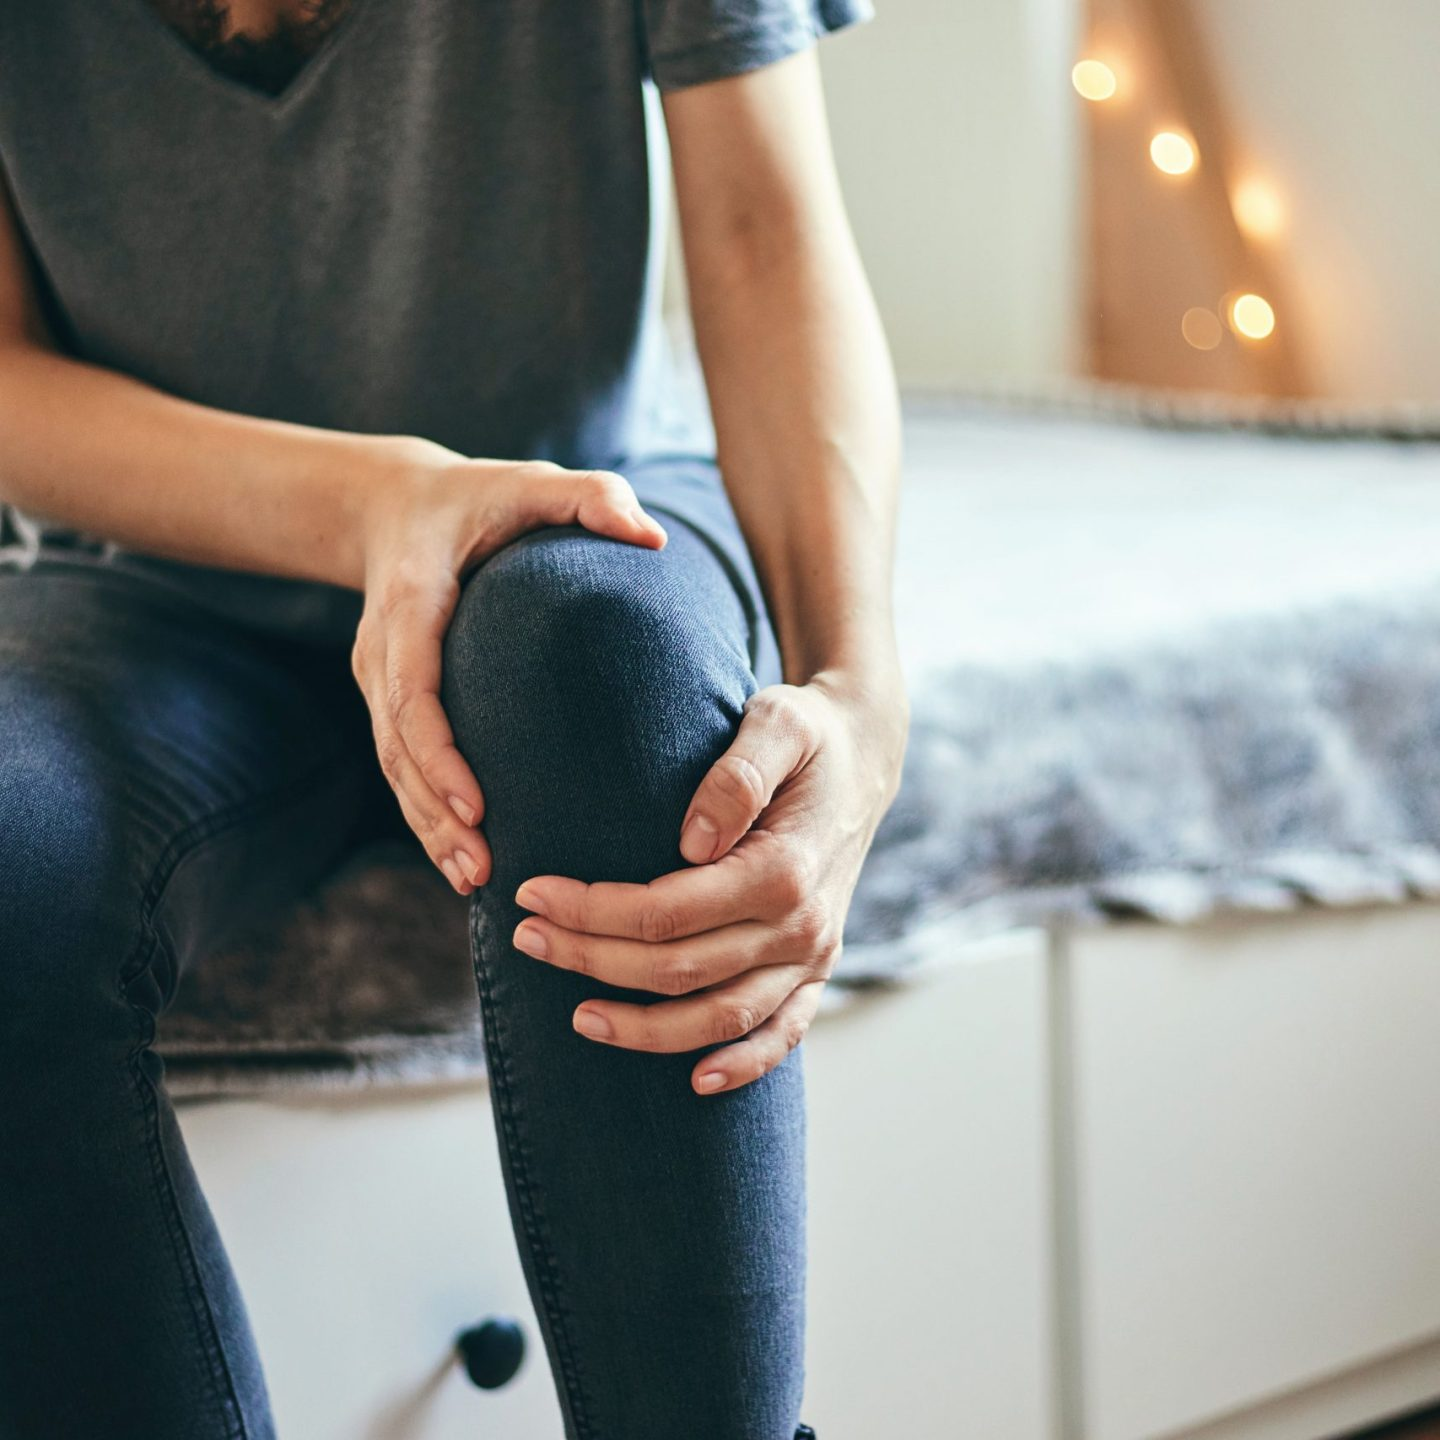 How to Get Relief from Postpartum Back and Knee Pain